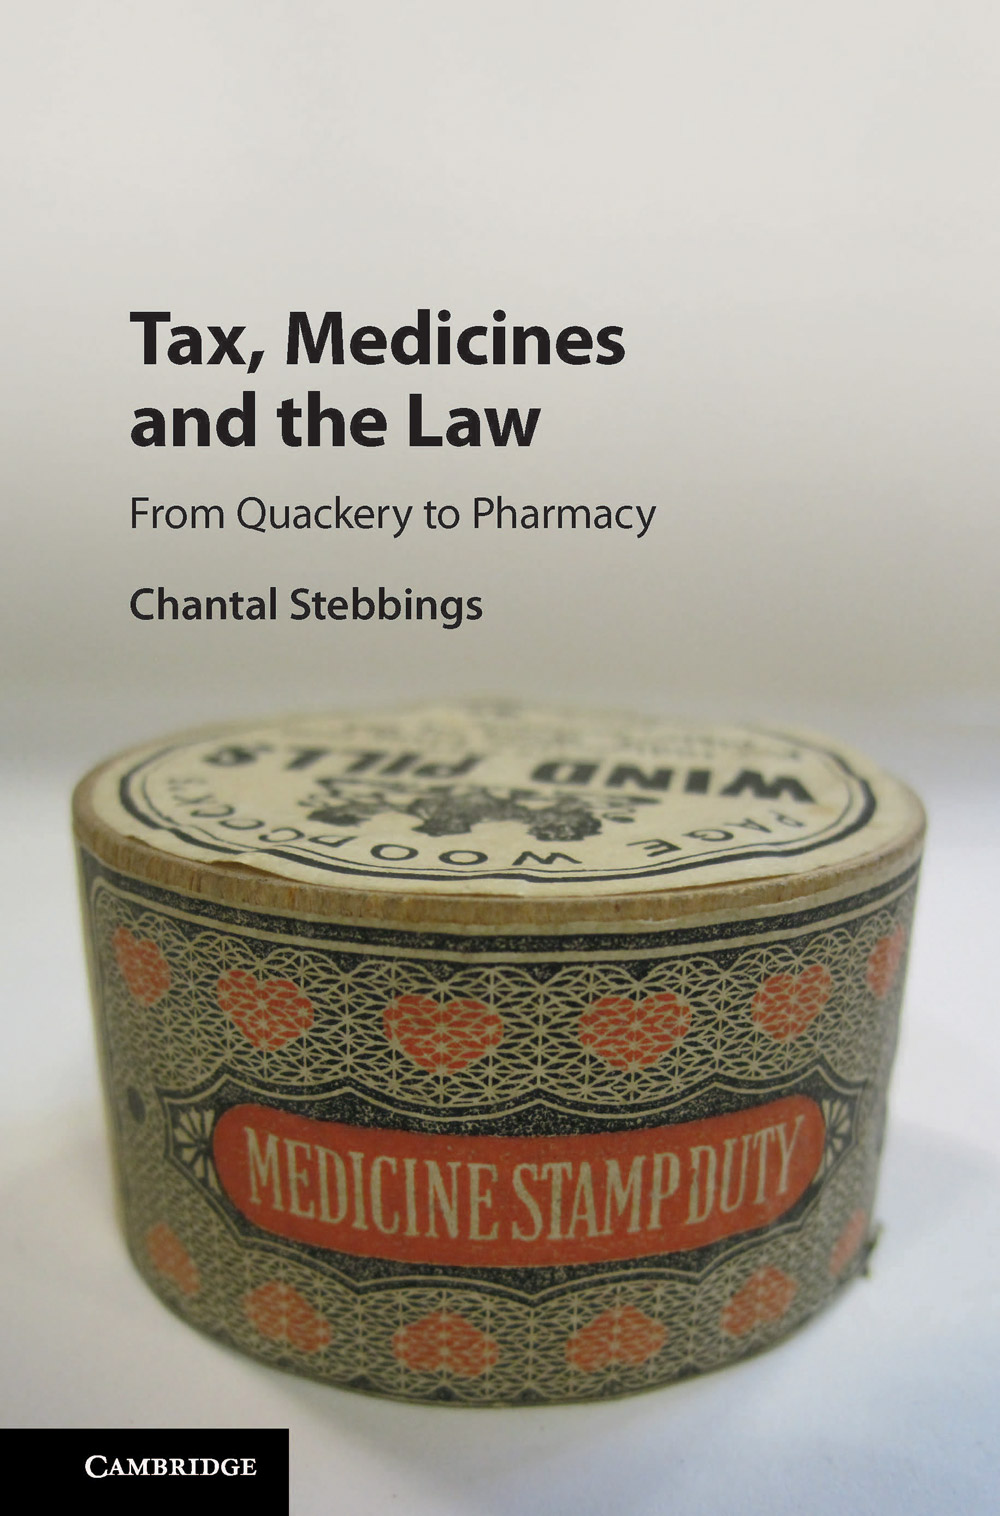 <a href='https://www.cambridge.org/core/books/tax-medicines-and-the-law/18B05CE8E21962B0EF1D7CF3220D5259'>Tax, Medicines and the Law</a> (2017)<br /><a href='http://socialsciences.exeter.ac.uk/law/staff/stebbings/'>Chantal Stebbings</a>